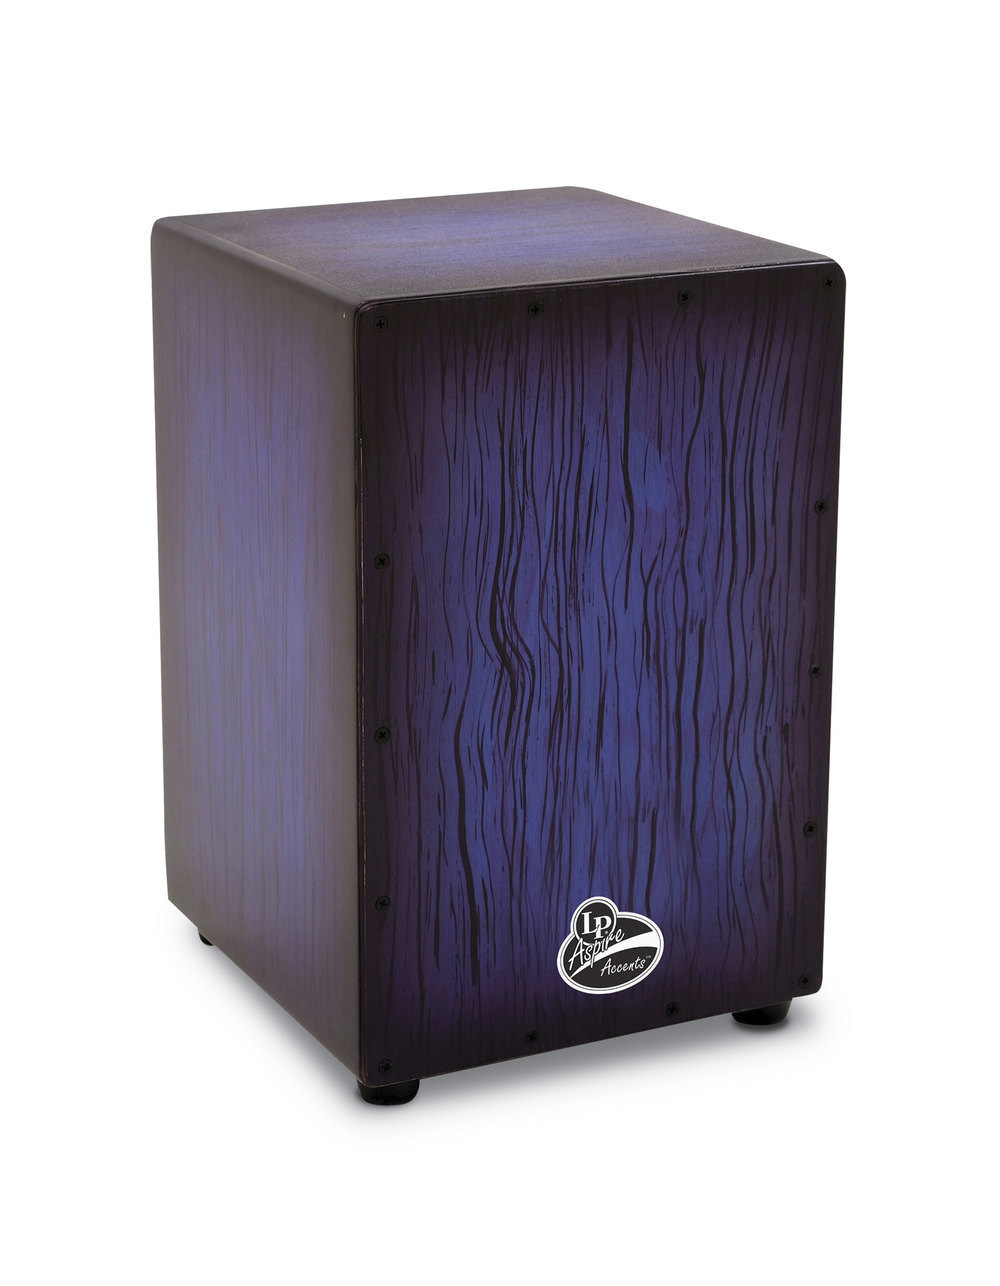 Image of   LP Aspire Accents Blueburst Streak Cajon